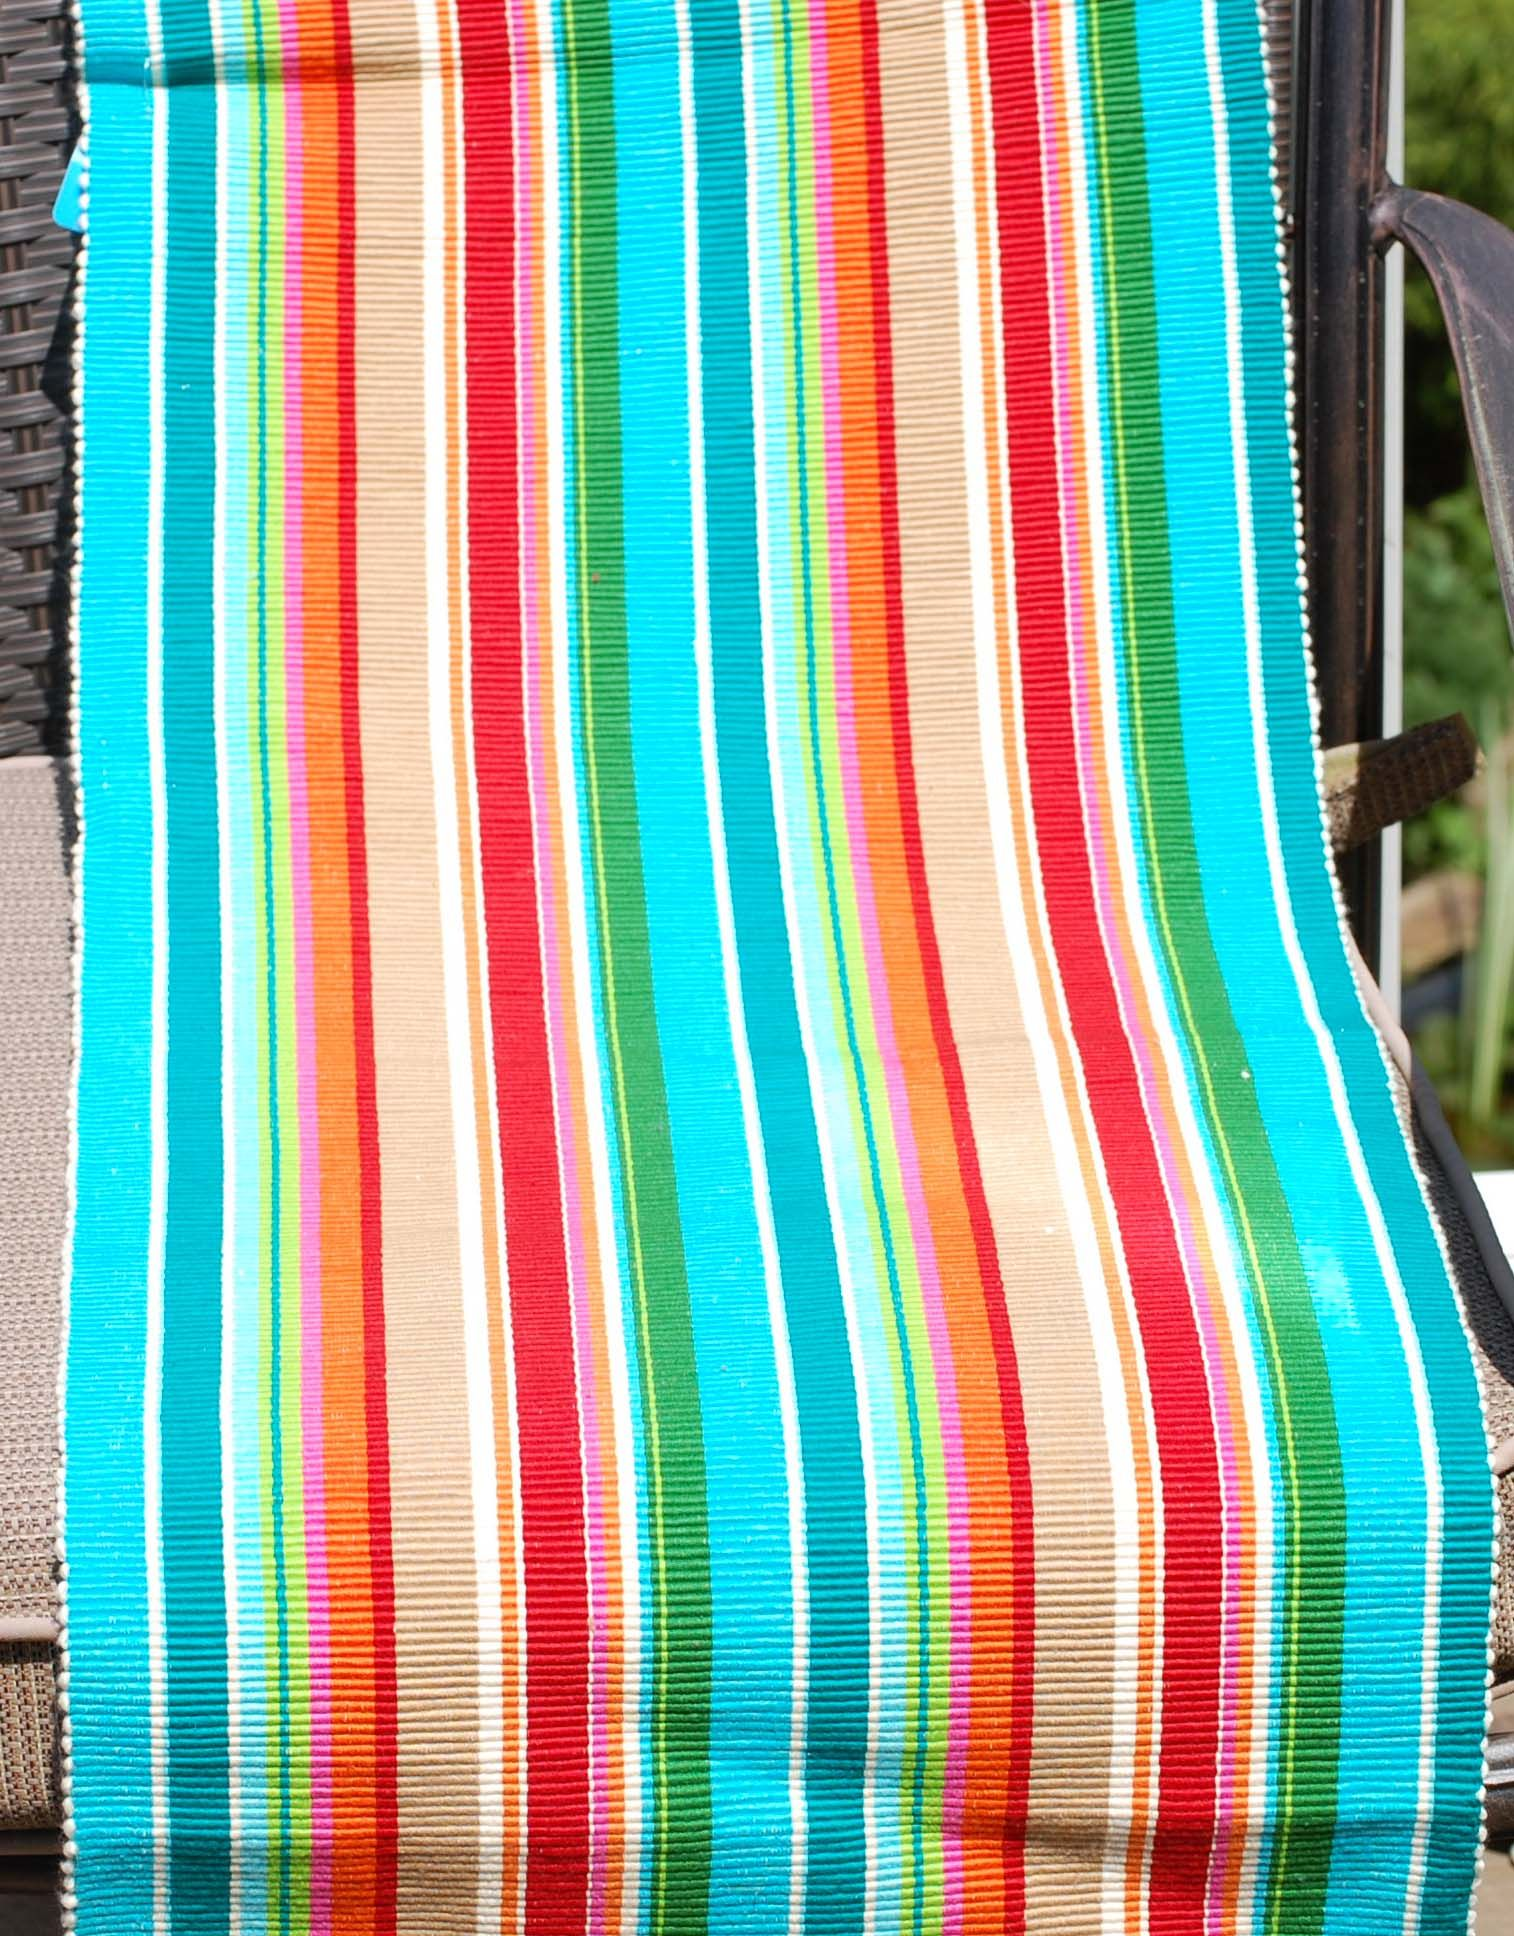 Superbe A Colorful Striped Table Runner